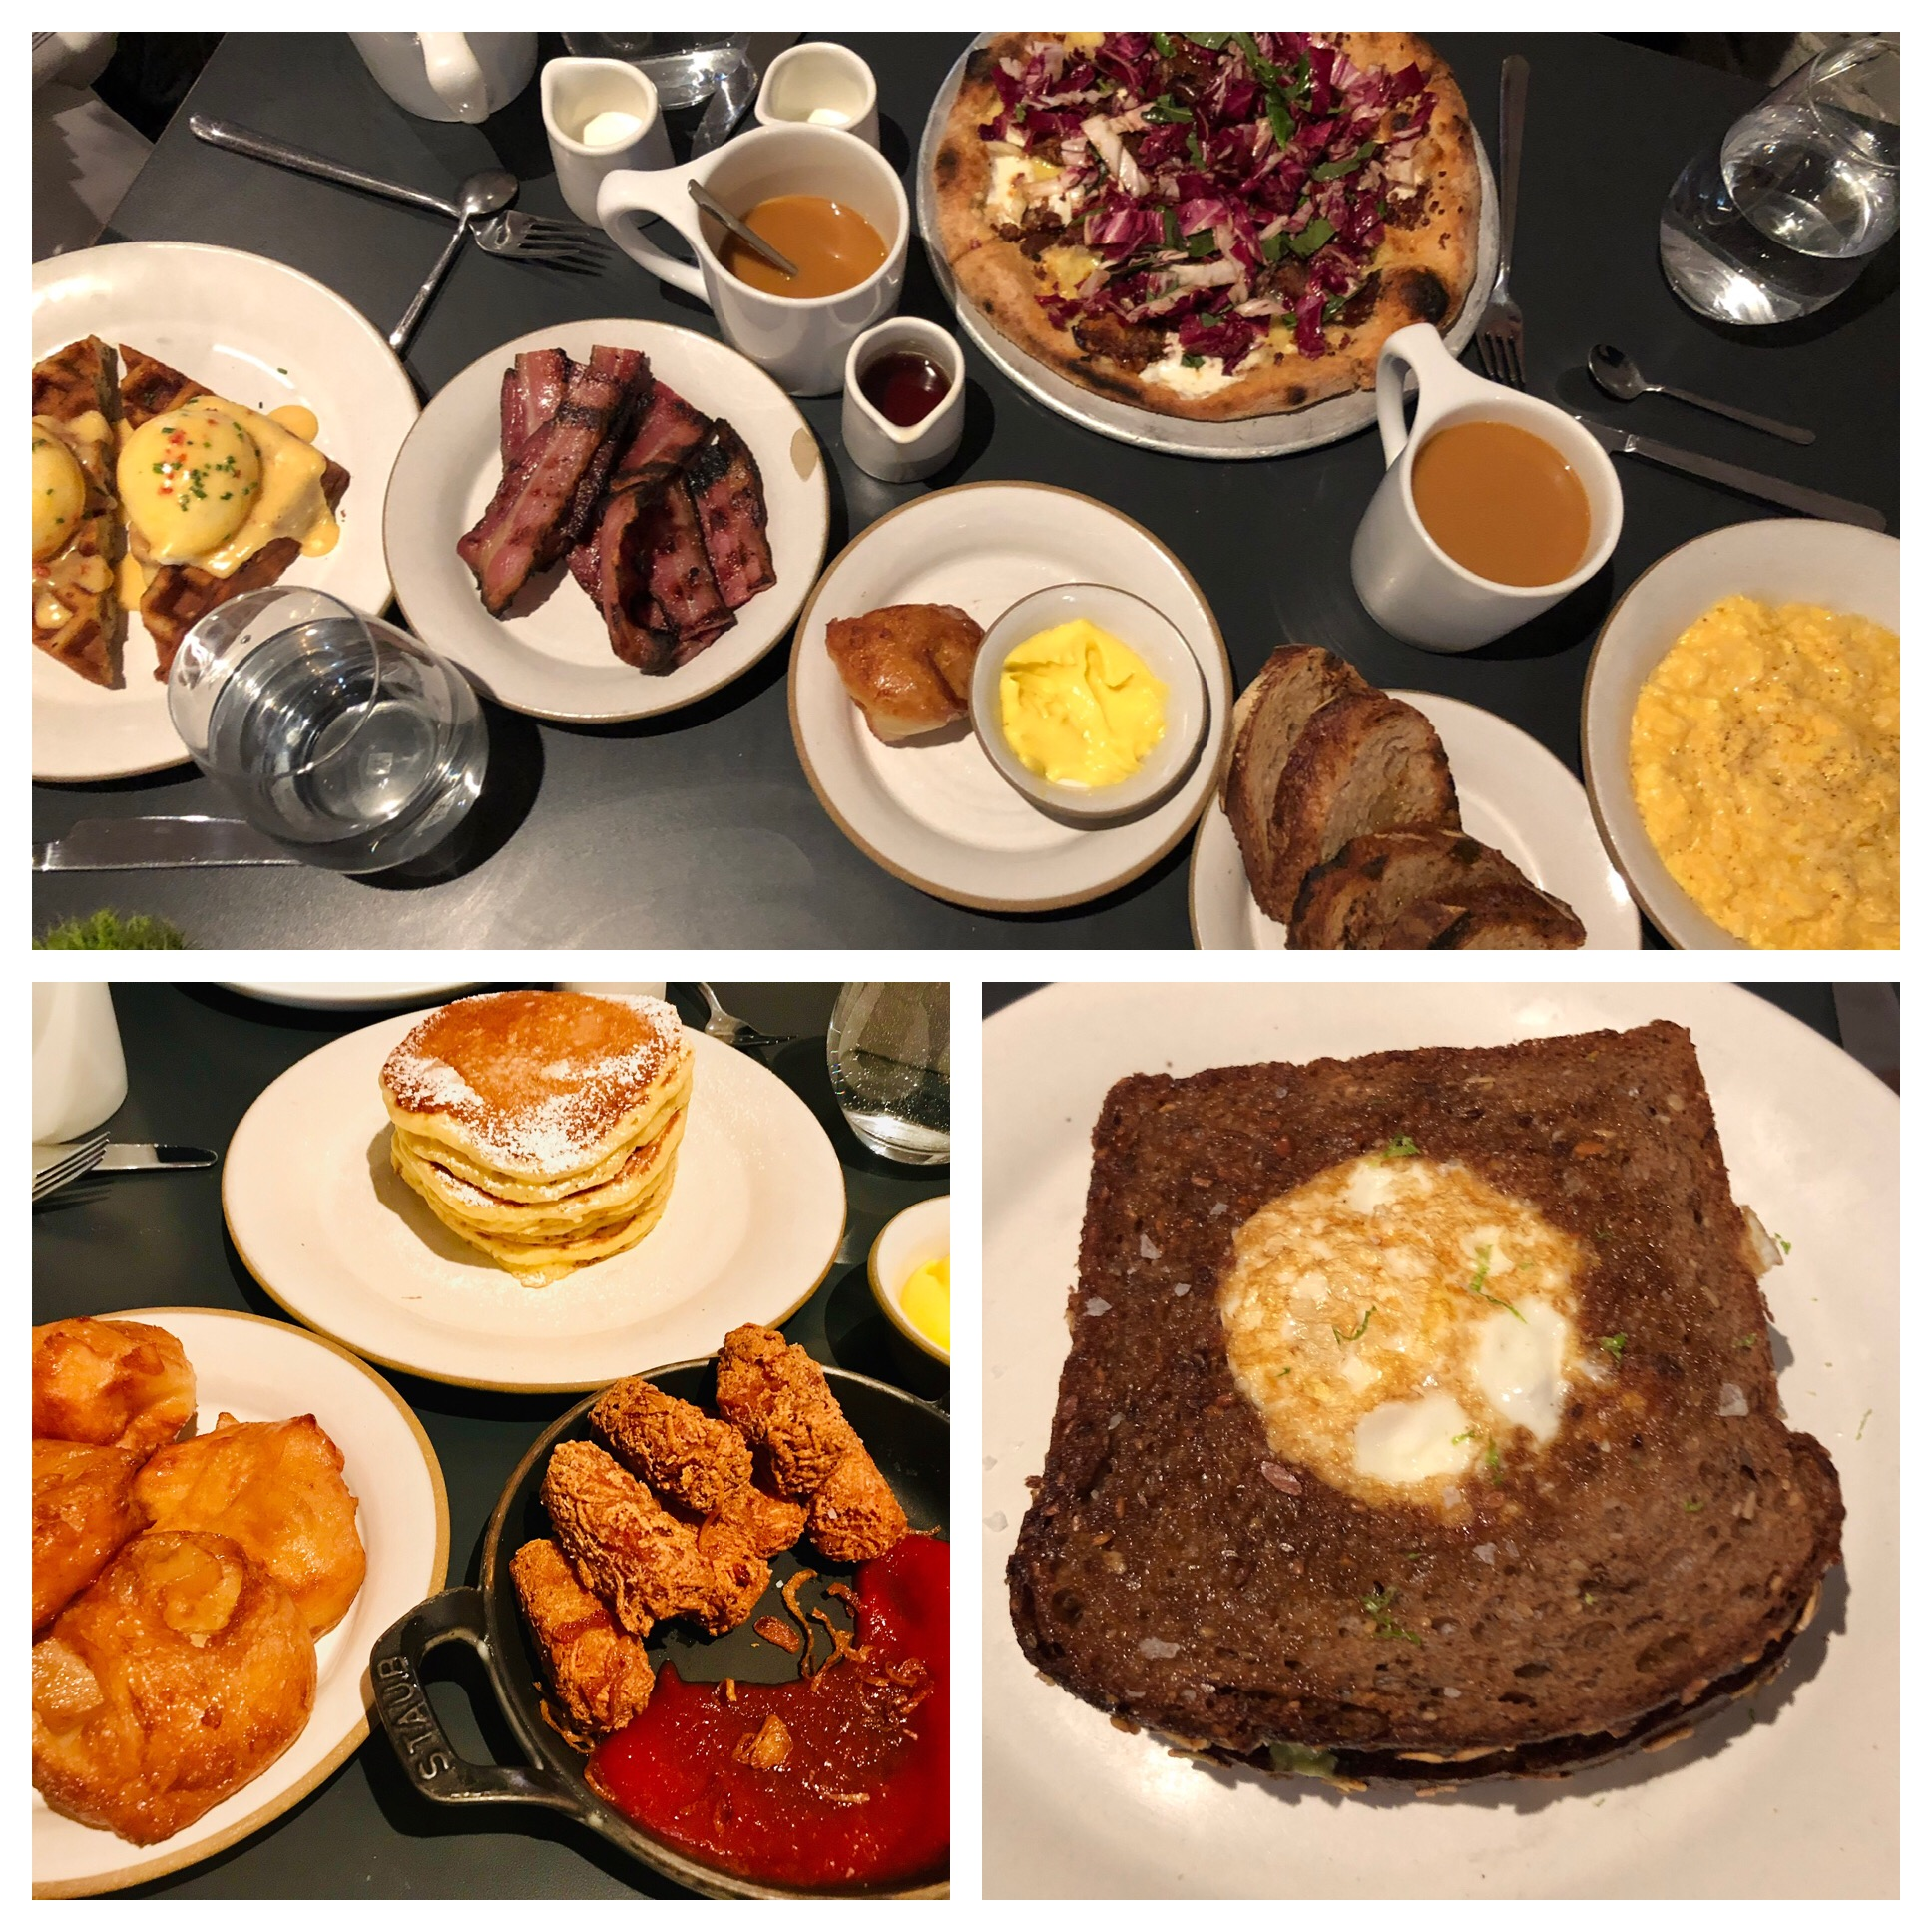 We shared appetizers of apple fritters, tater tots and pancakes with lemon curd. Then everyone picked an entree. Waffles with ham and cheese in the batter topped with eggs, a breakfast pizza that was savory and sweet, toad in the hole with avocado and eggs scrambled with crepe fraiche. And bacon😊